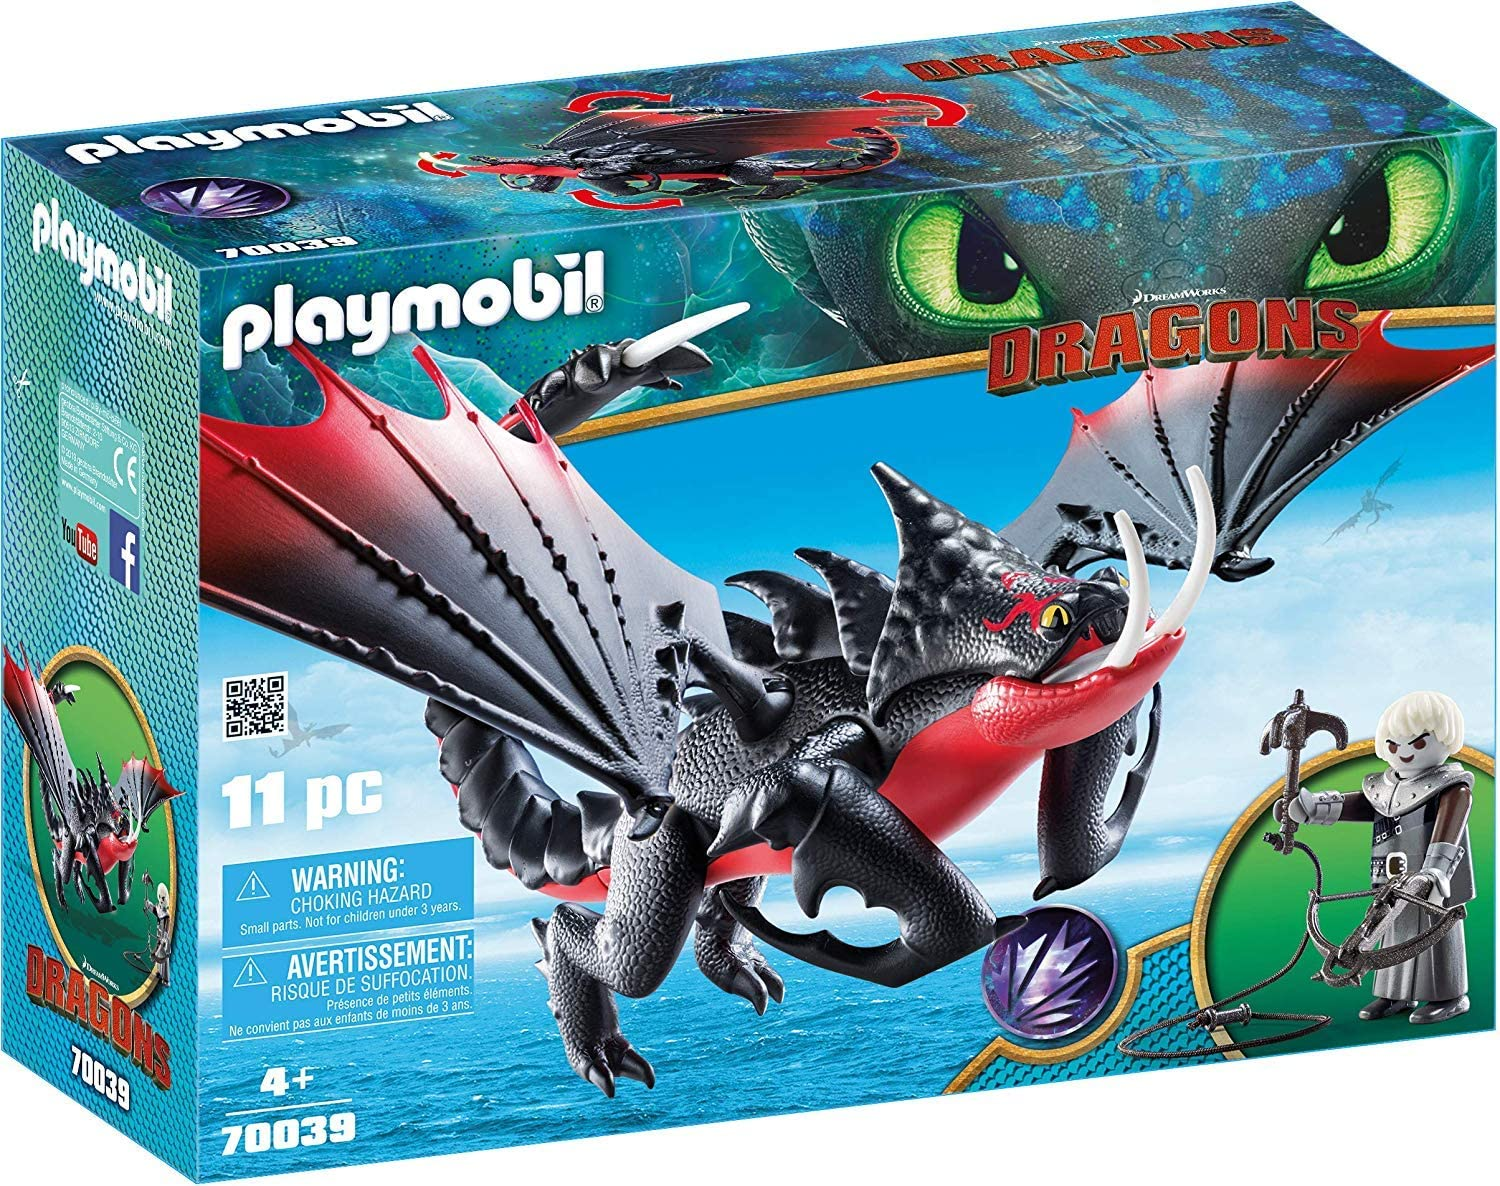 PLAYMOBIL How Special price for a limited time to Train Your Dragon Grimmel Deathgripper with III Max 44% OFF